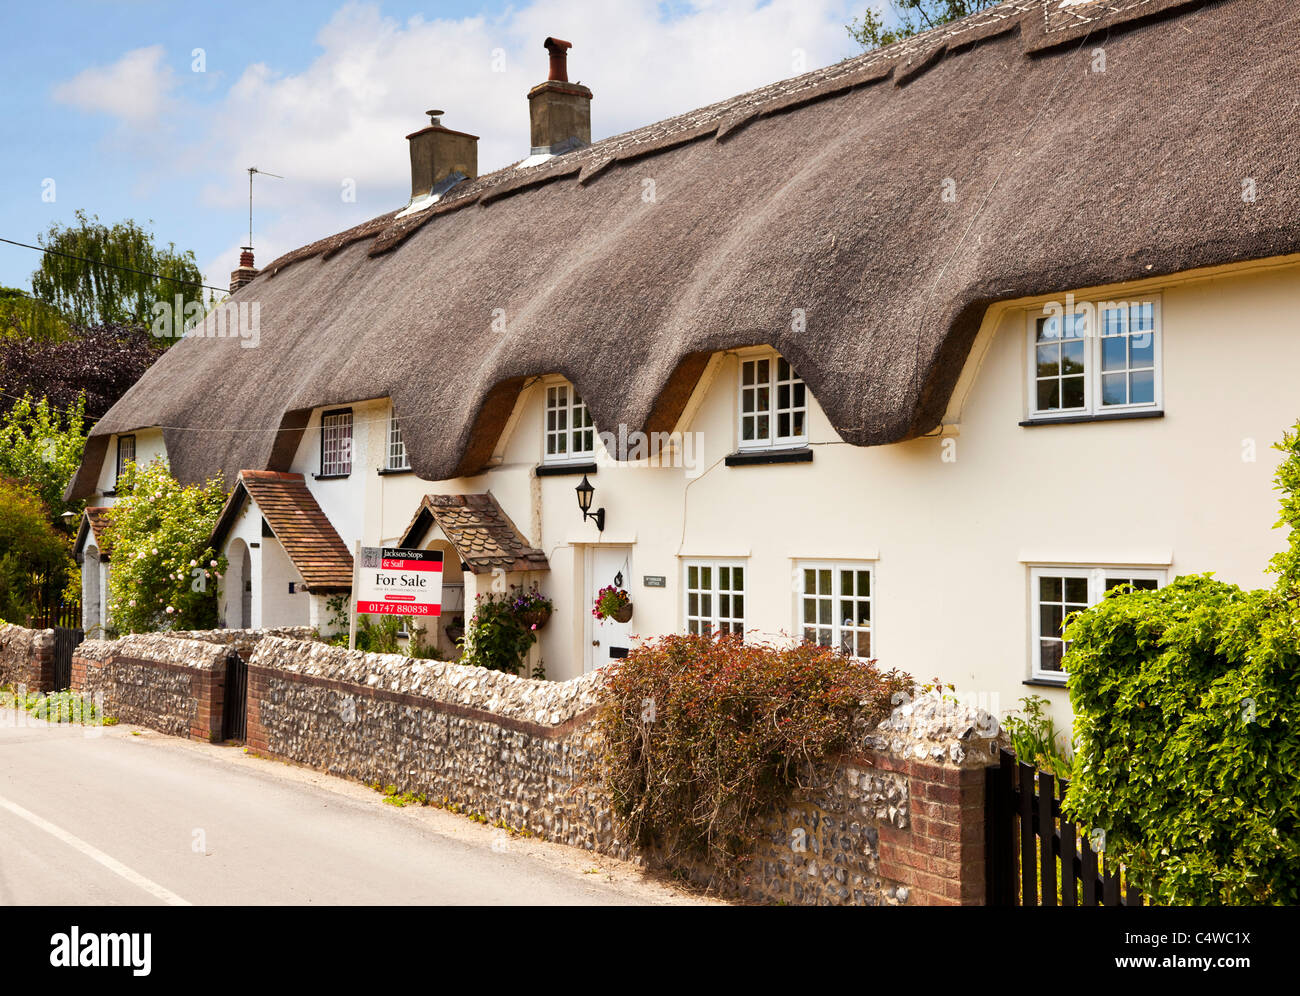 Thatched Cottage Uk Old English Semi Detached Terrace